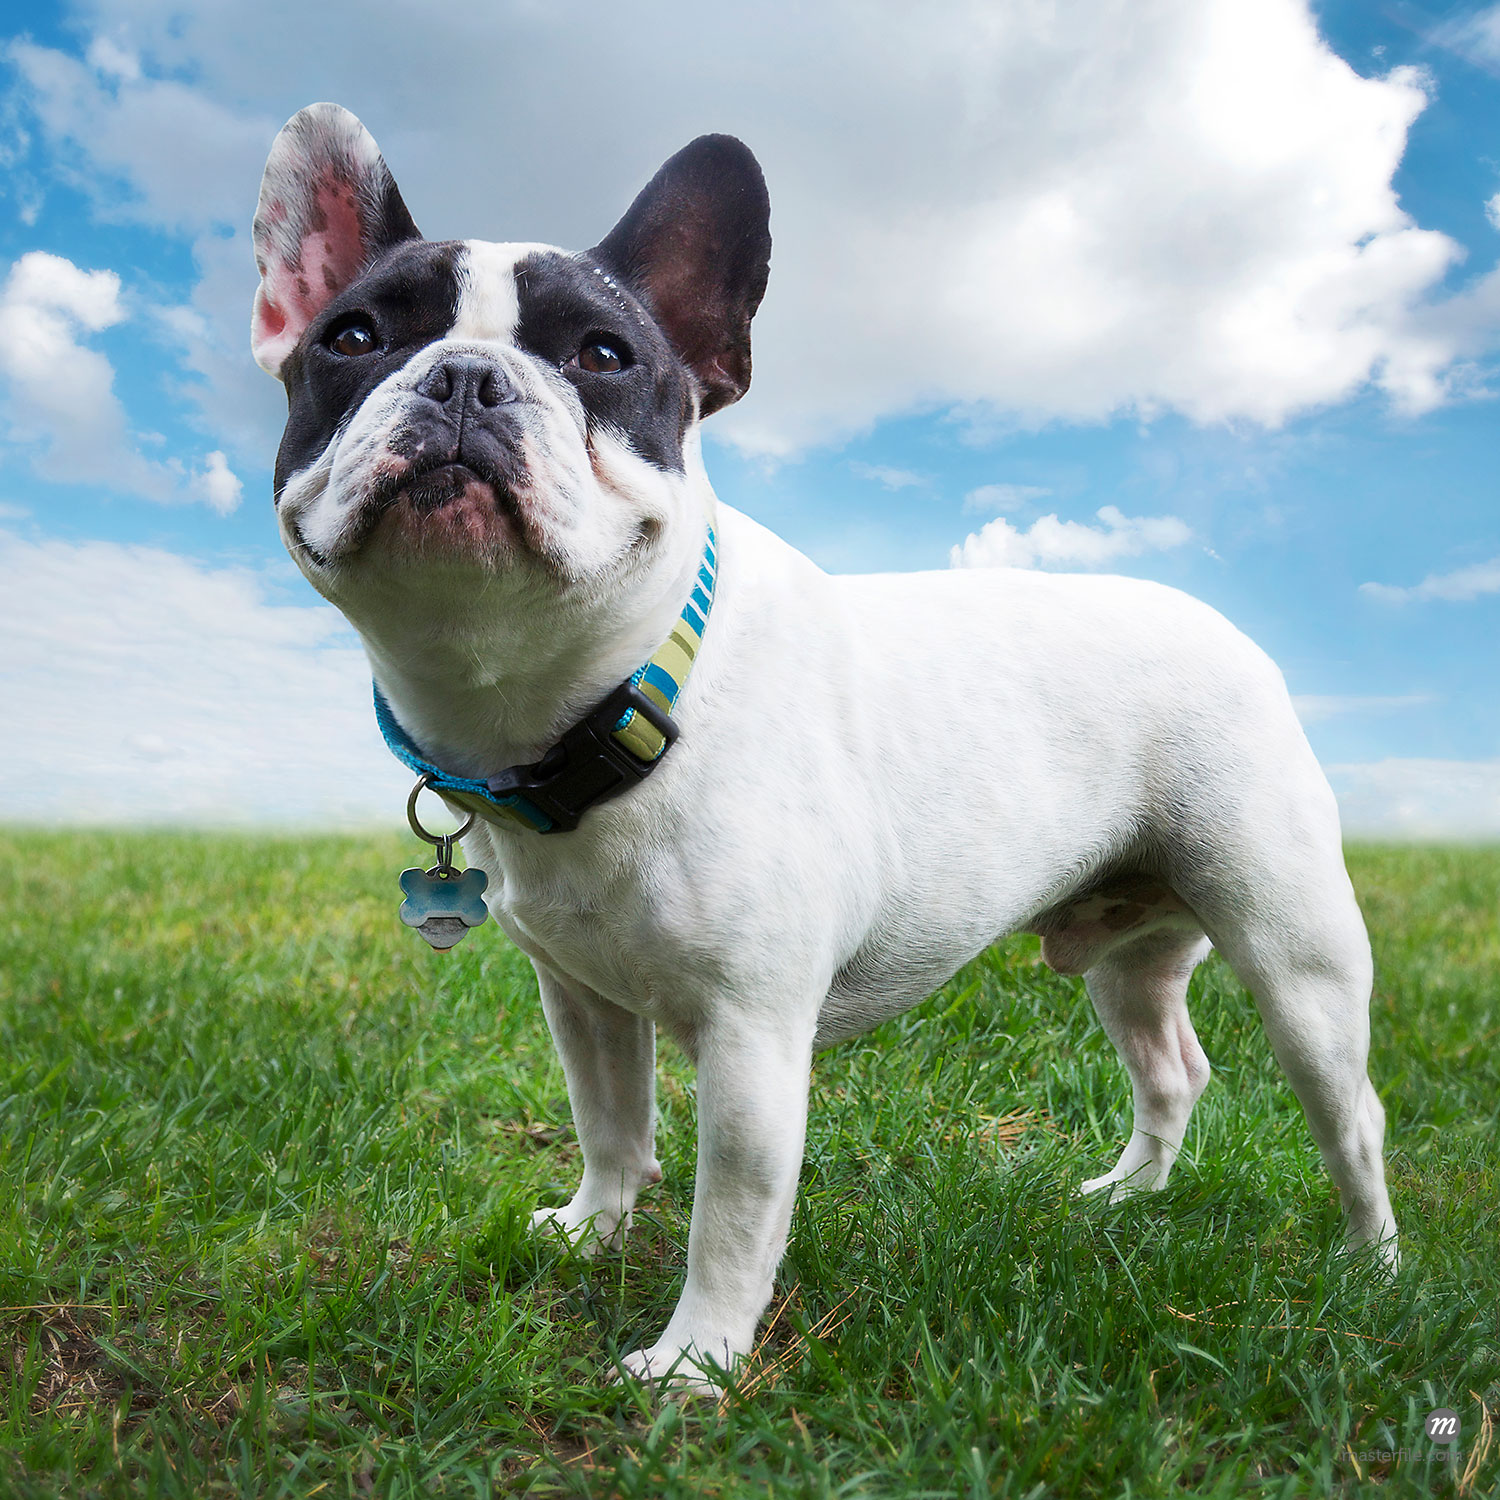 Four year old French Bulldog  © Andrew Kolb / Masterfile